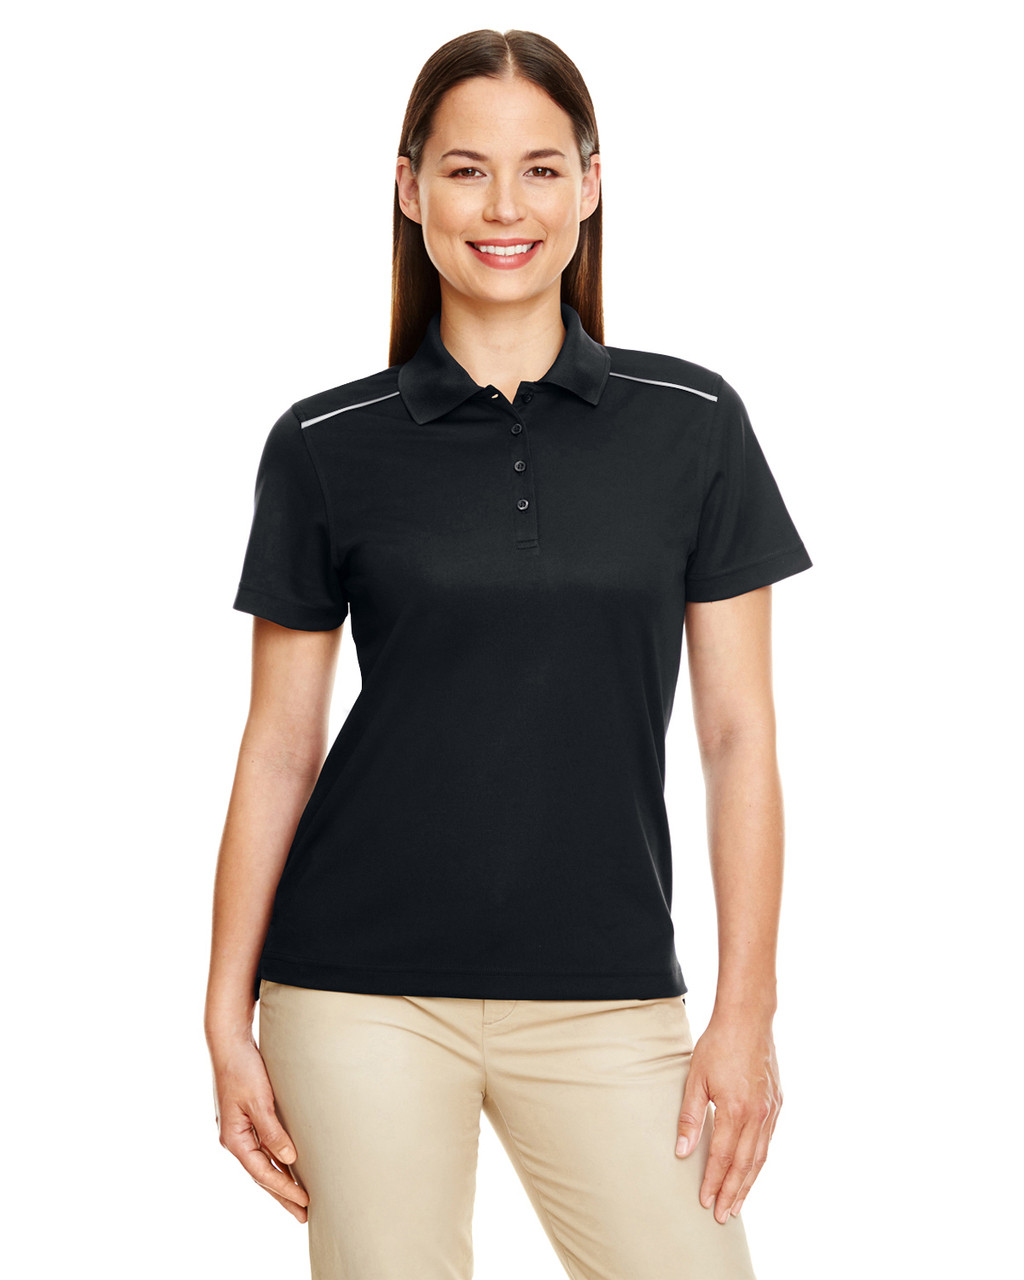 Black - 78181R Ash City - Core 365 Ladies' Radiant Performance Piqué Polo Shirt with Reflective Piping | Blankclothing.ca